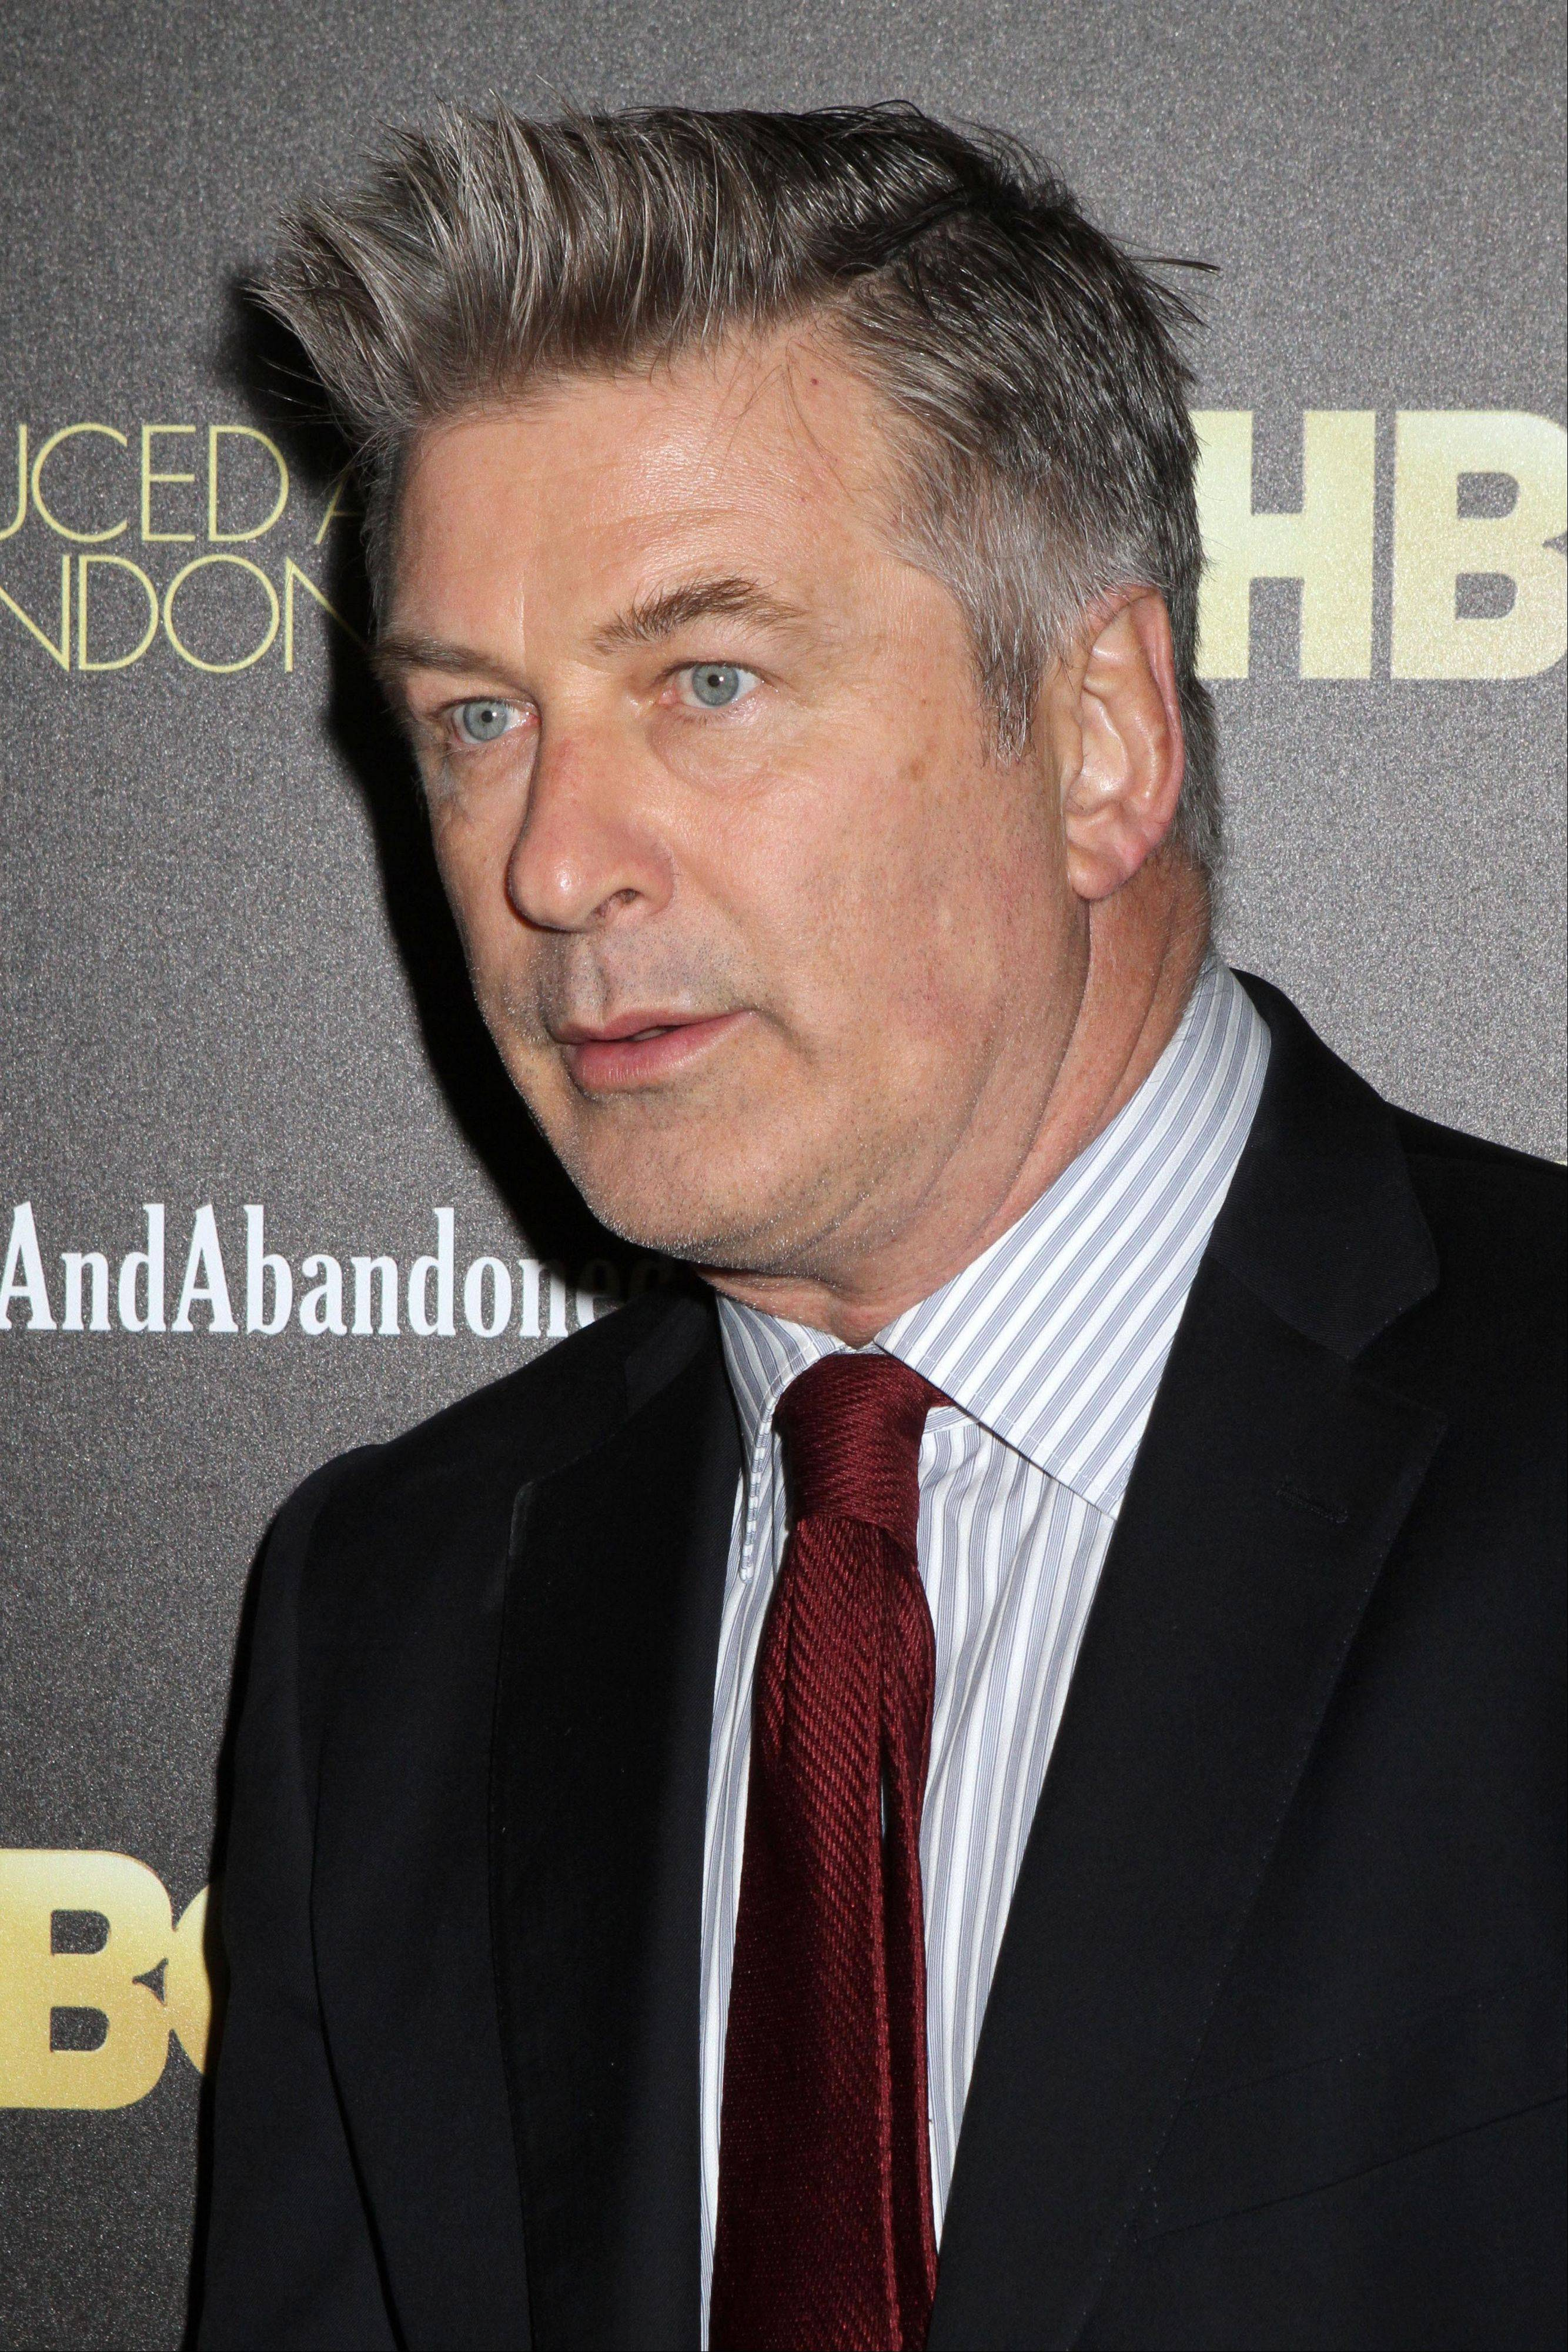 "In this Oct. 24, 2013 file photo, producer and actor Alec Baldwin attends the HBO premiere of ""Seduced and Abandoned"" at The Time Warner Center in New York. On Friday, MSNBC suspended Baldwin for two weeks for inflammatory remarks he made to a reporter earlier in the week."